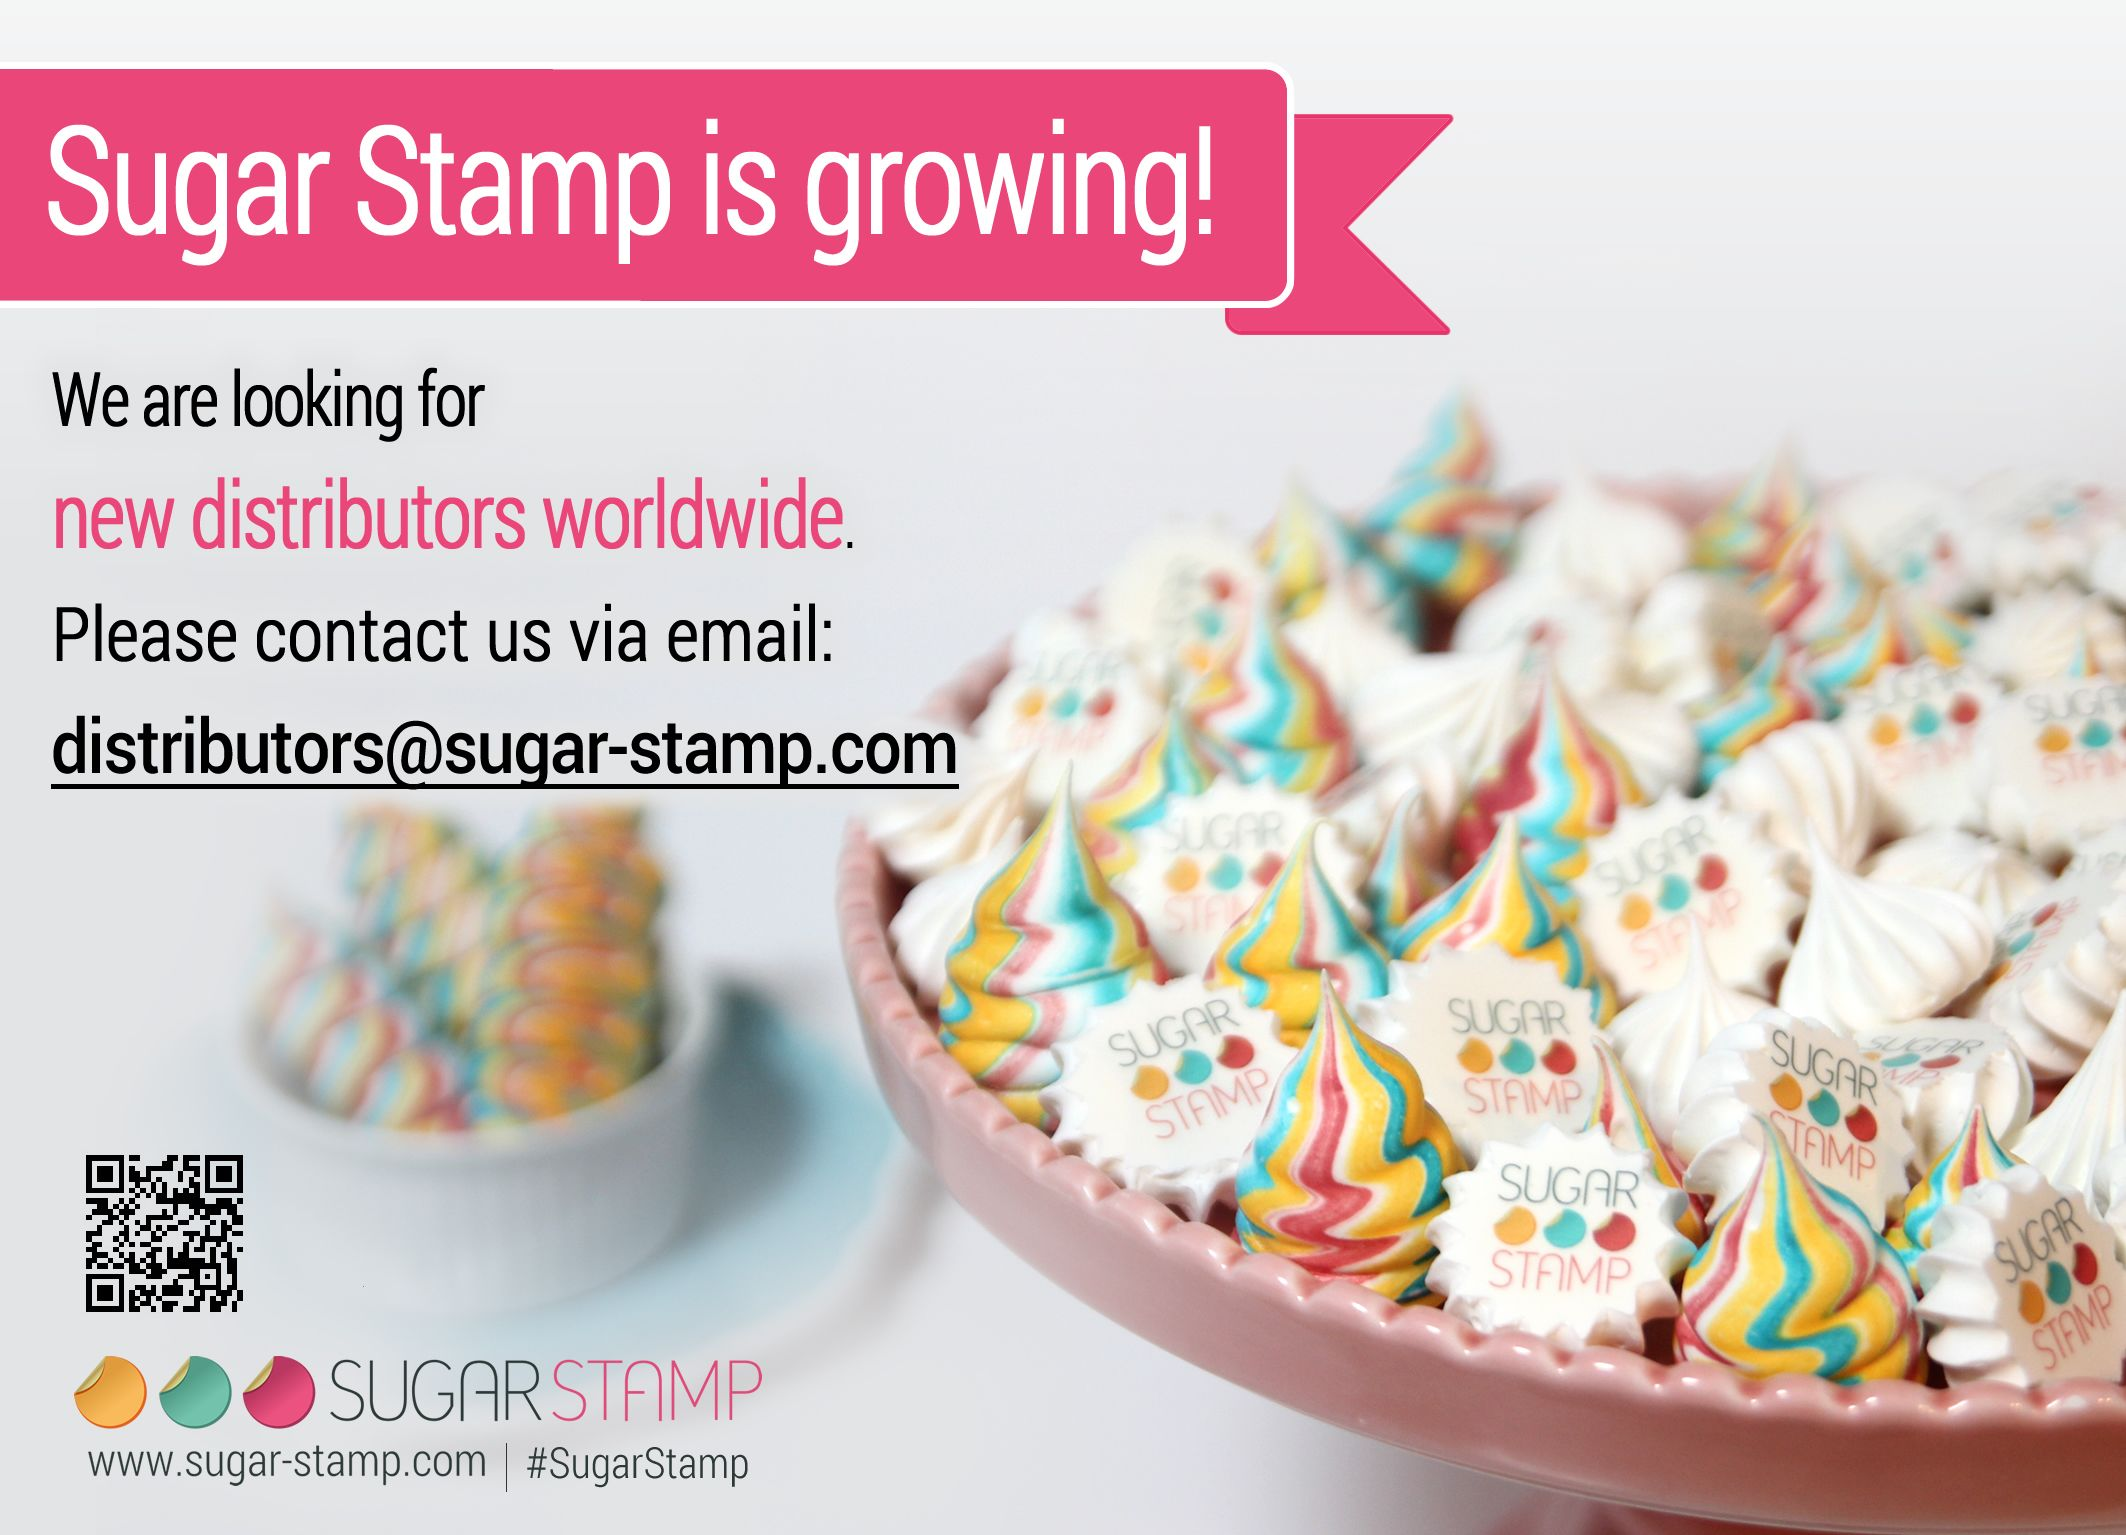 Sugar Stamp is growing! We are looking for new distributors